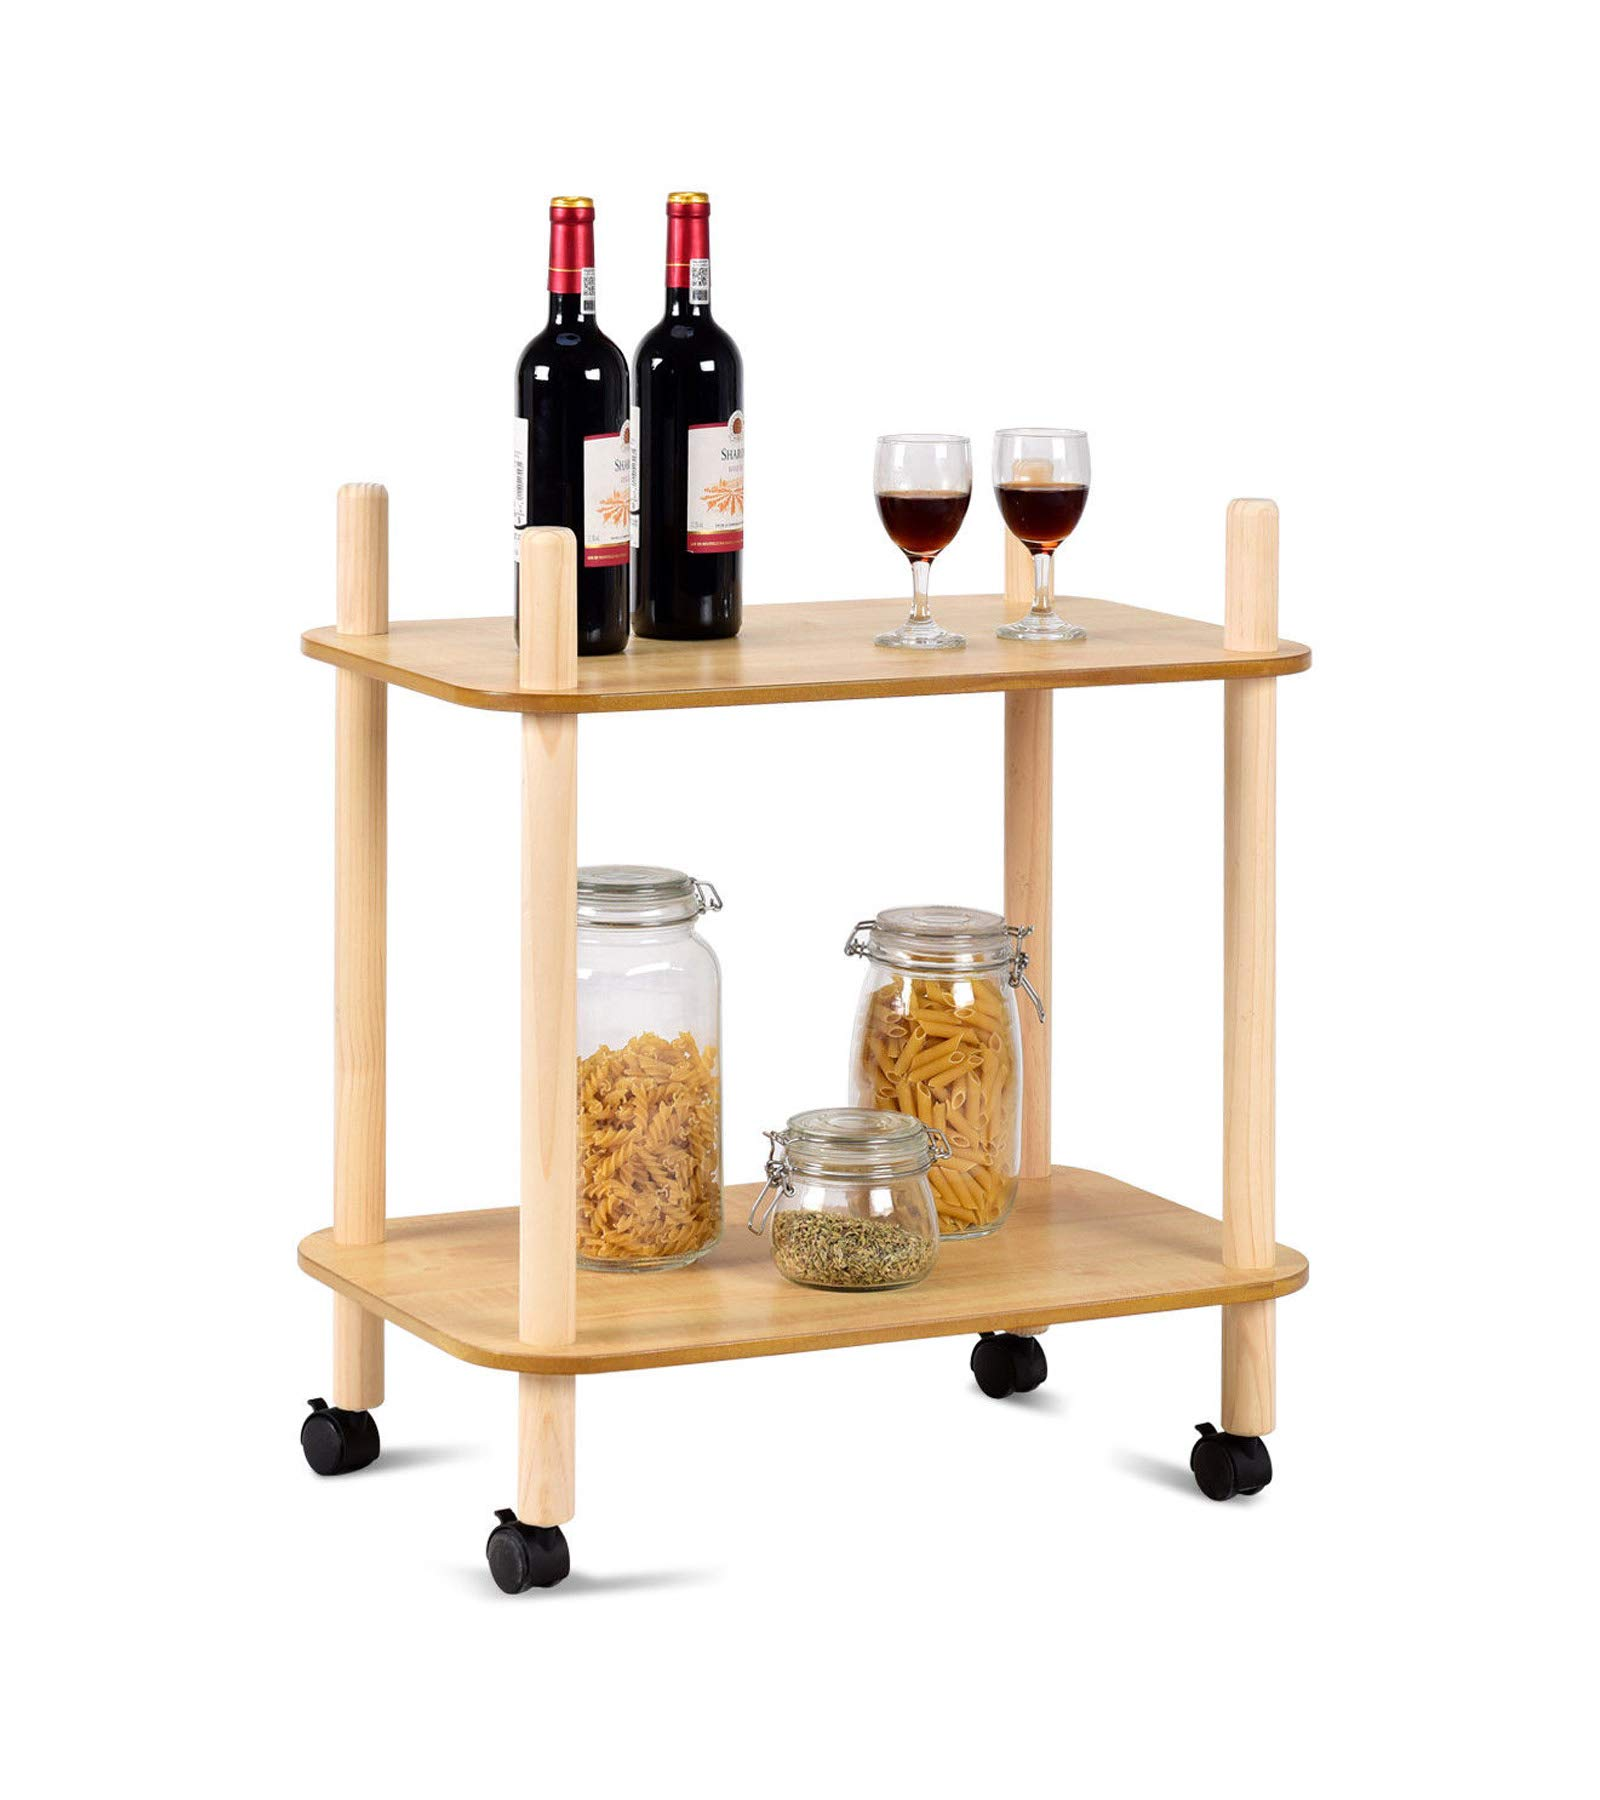 2 Tier Rolling Utility Storage Rack Serving Cart - 24'' L x 16'' W x 27'' H - Wine Rack with Wheels Kicthen Bar Dining Room Tea Wine Holder Serving Cart Furniture - Strong Bearing Capacity